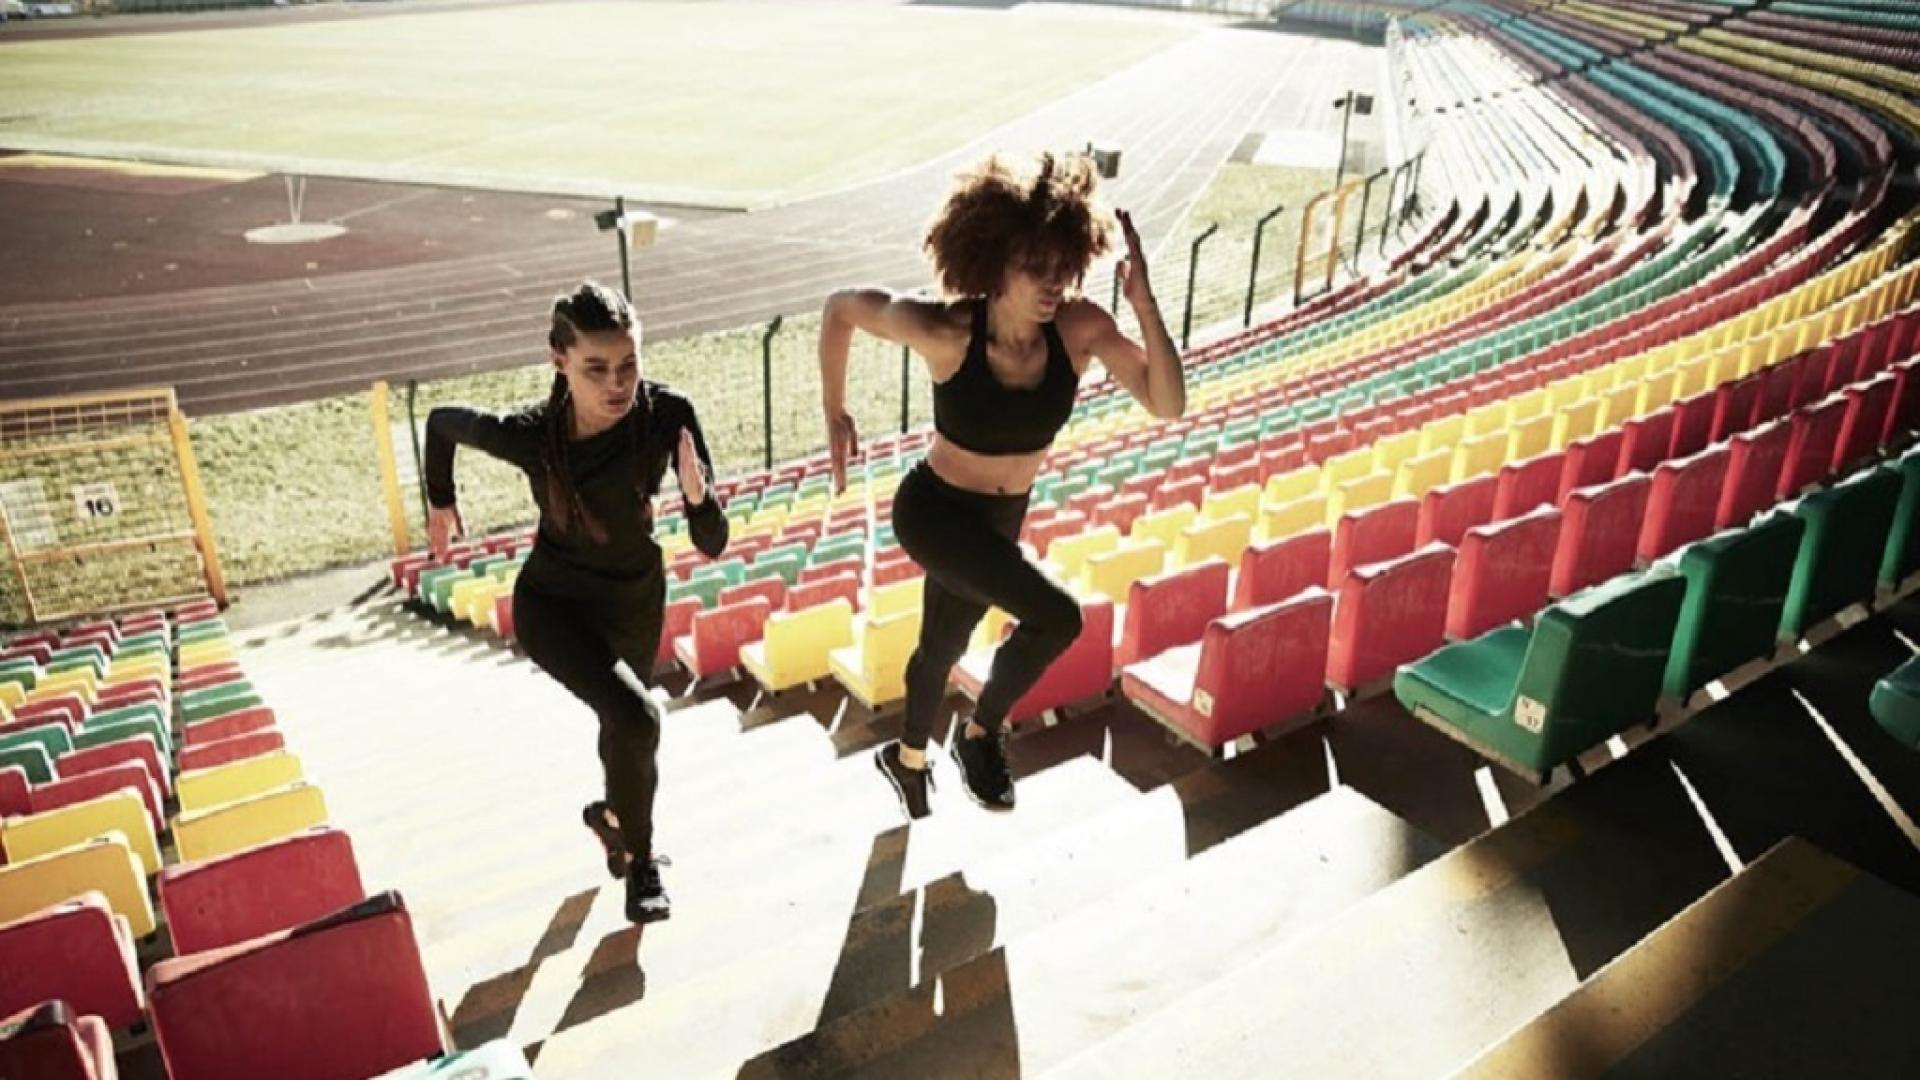 Women running up stairs in a stadium